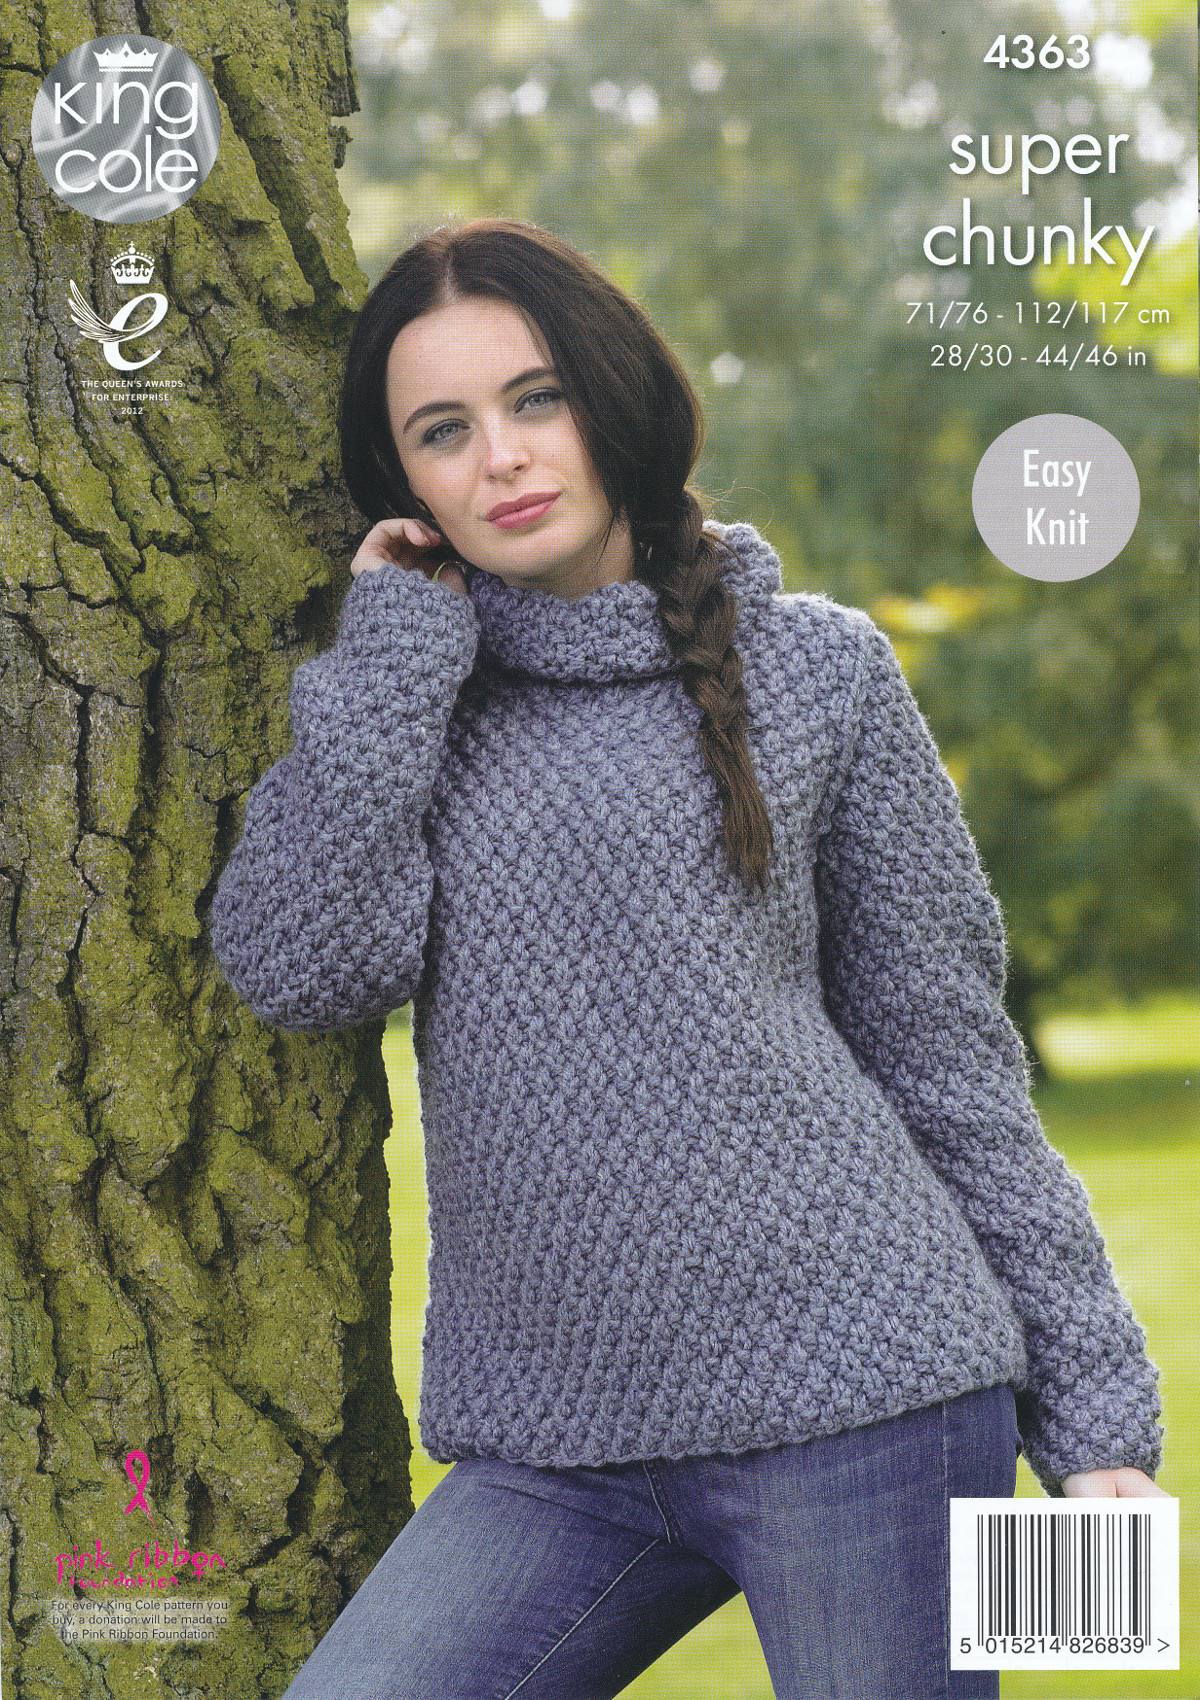 Vest Jumper Knitting Pattern : Ladies Super Chunky Knitting Pattern King Cole Easy Knit Sweater & Jacket...